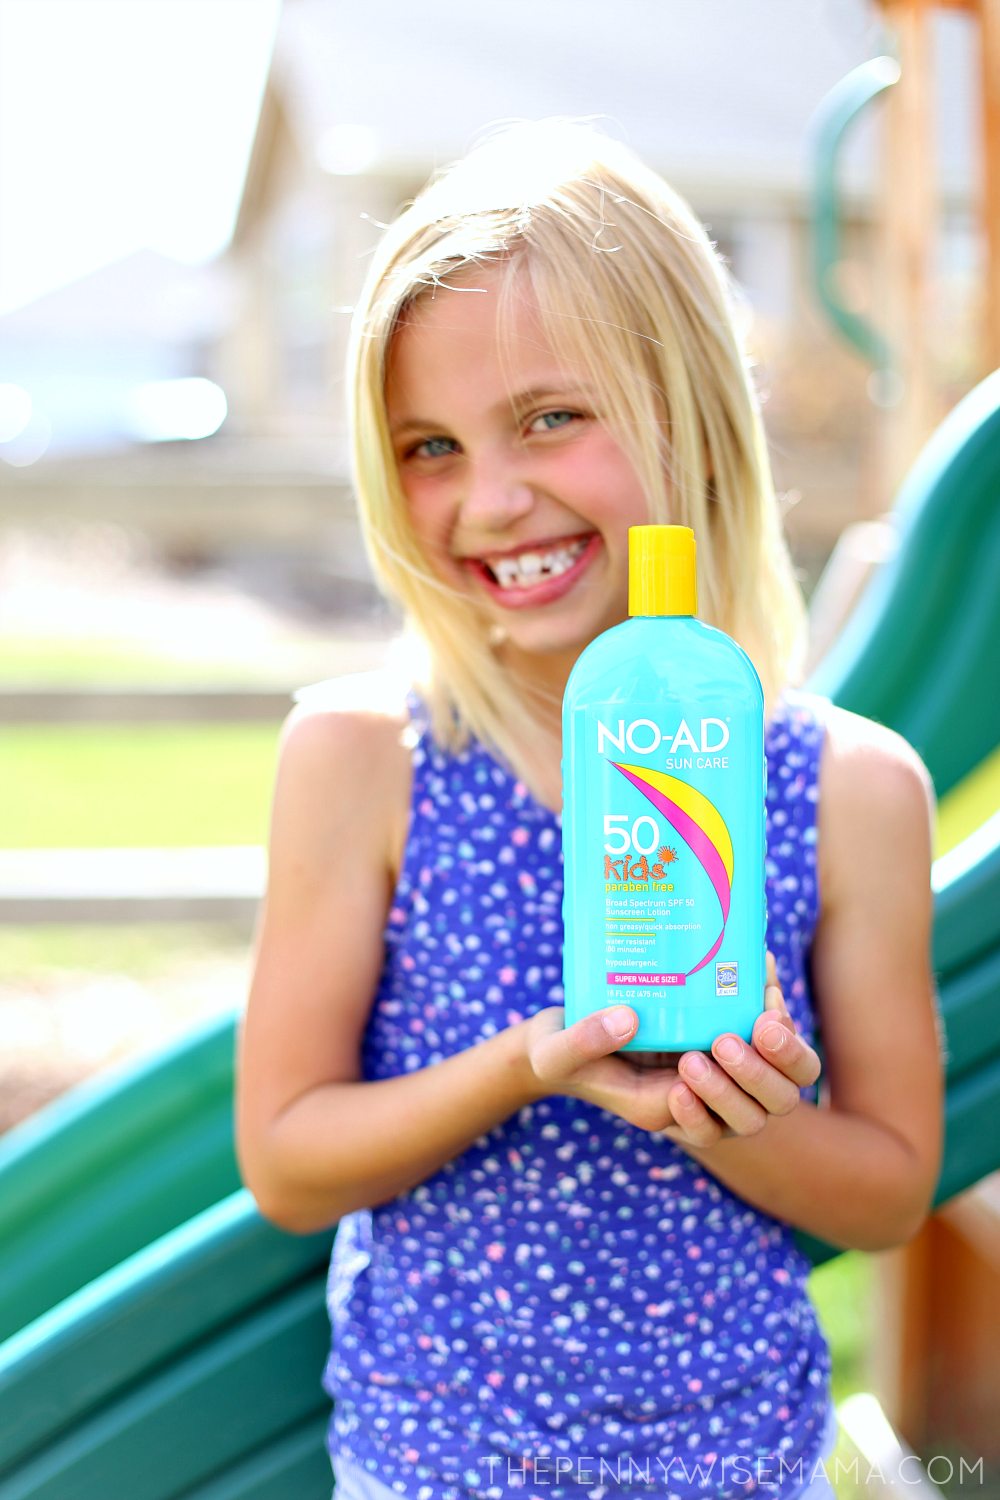 NO-AD Sunscreen for Kids